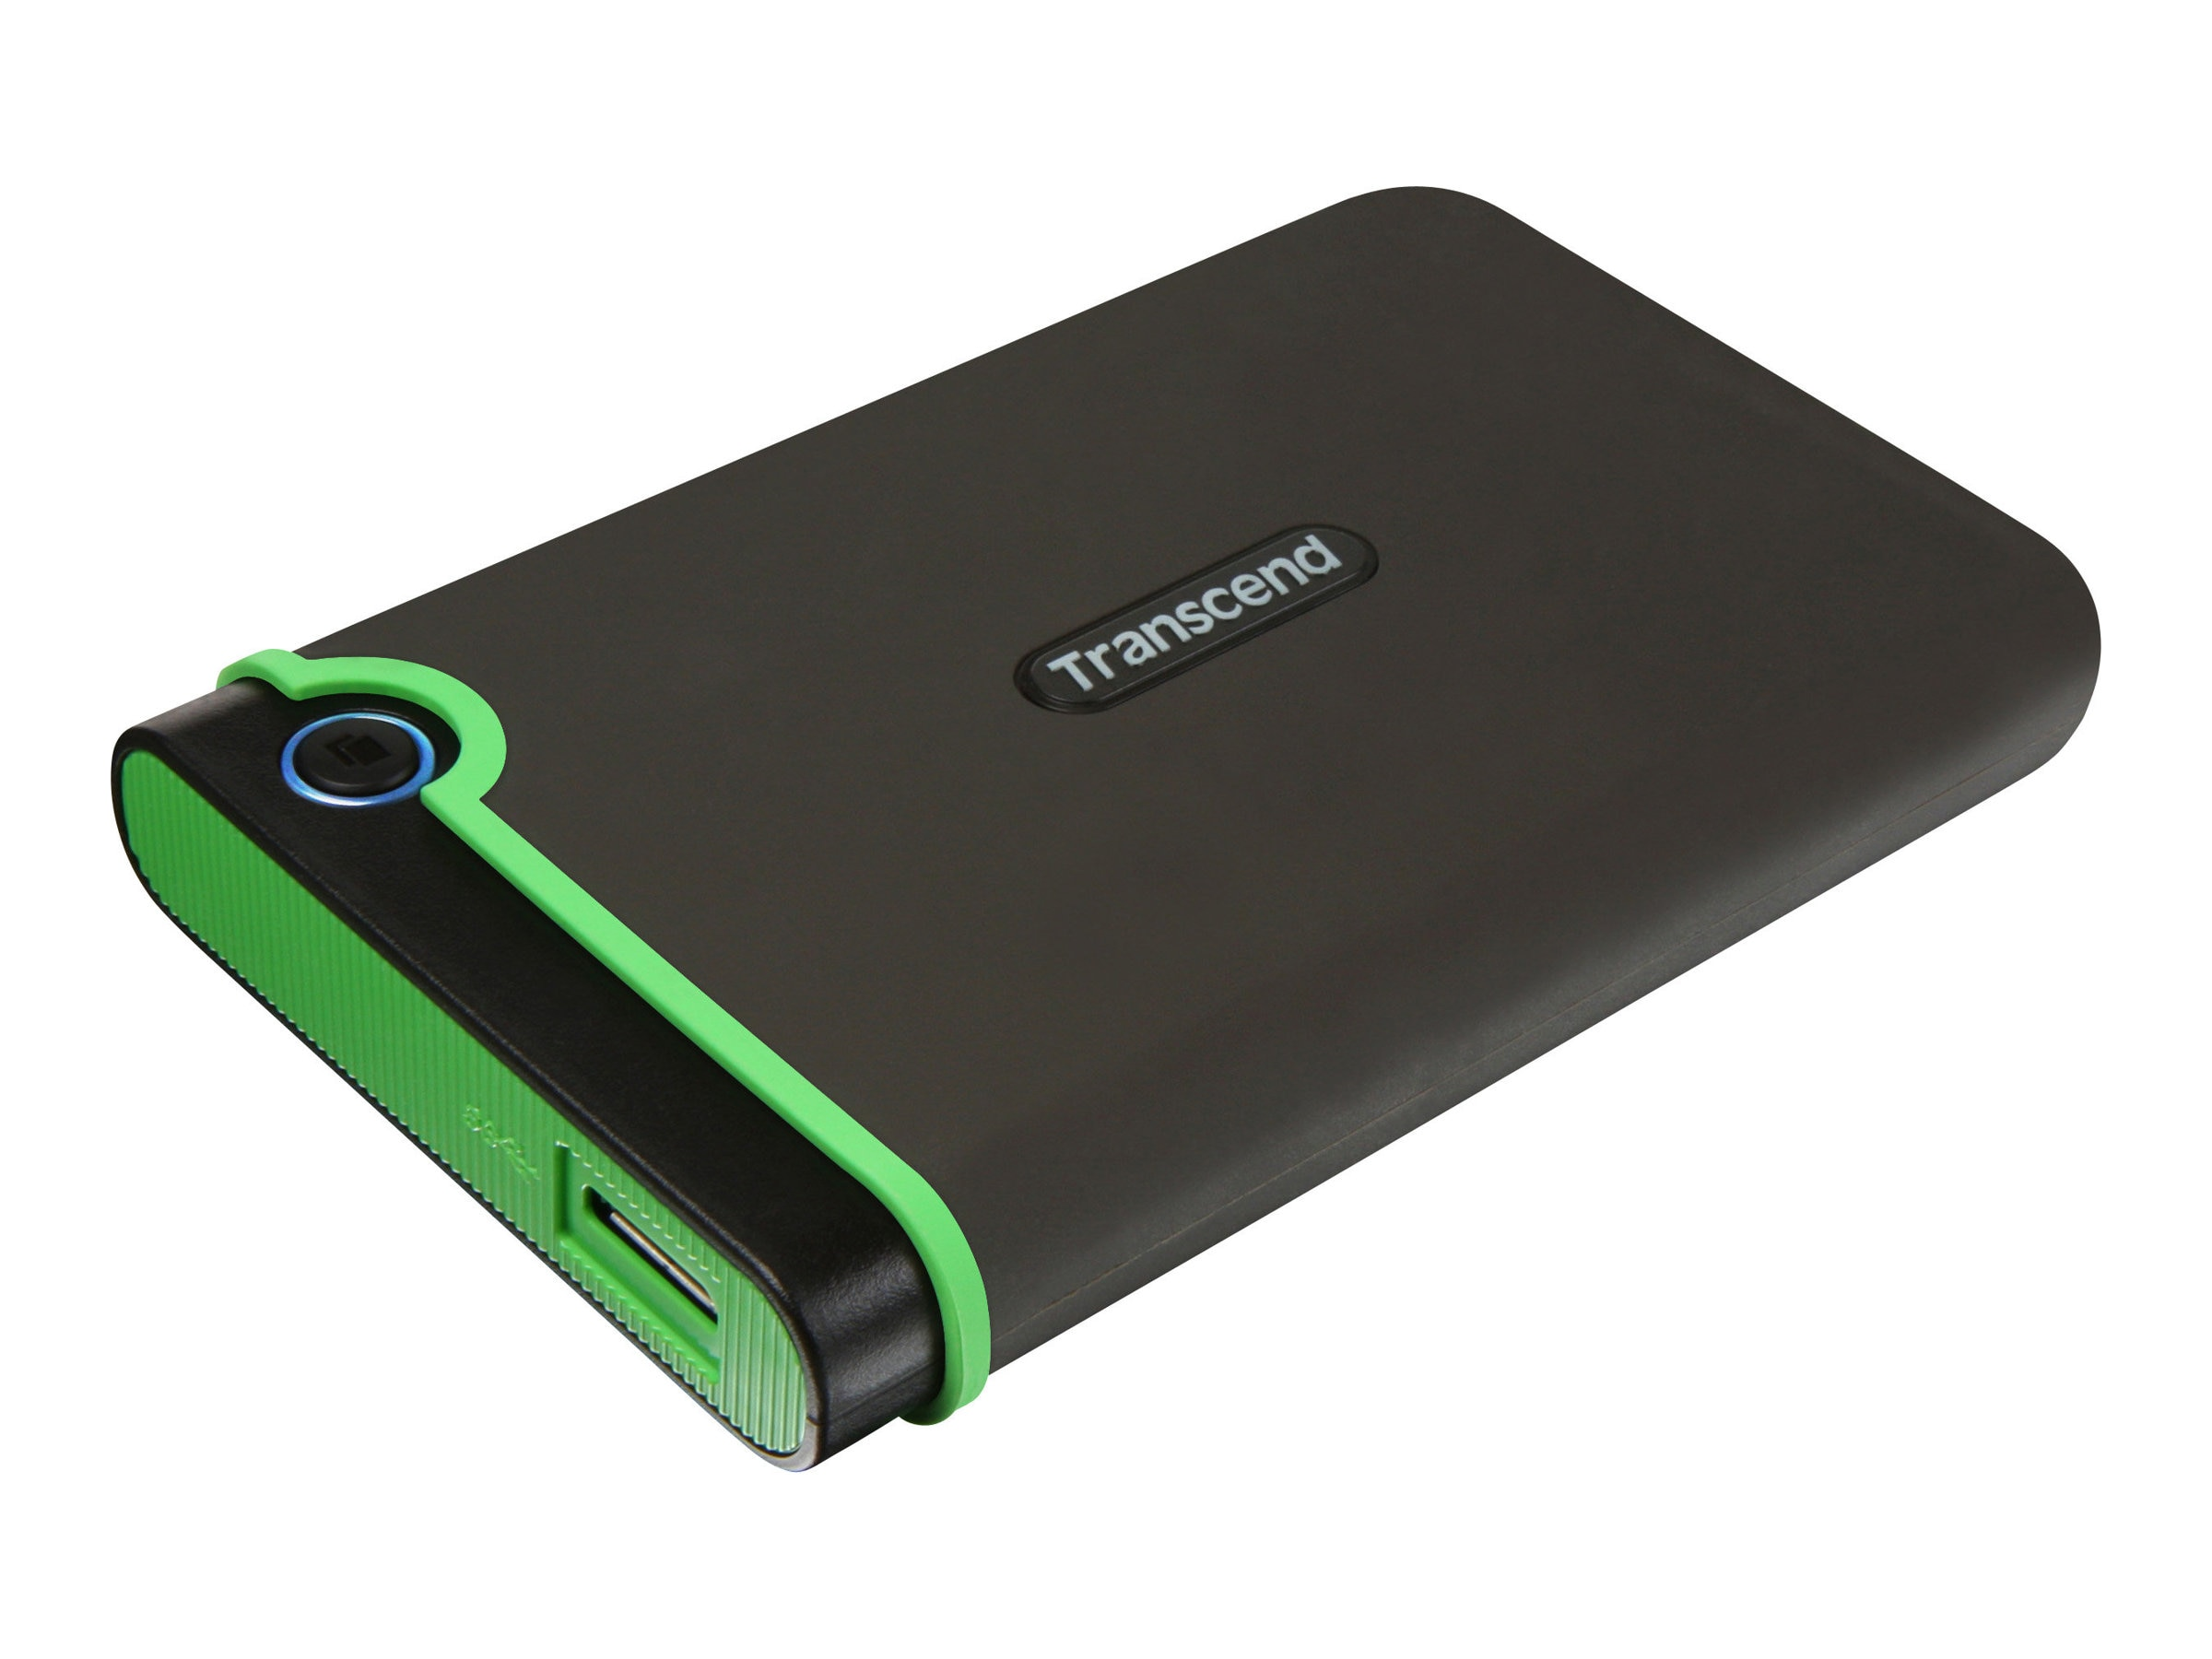 Transcend 1TB USB 3.0 Portable Hard Drive, TS1TSJ25M3, 13574628, Hard Drives - External